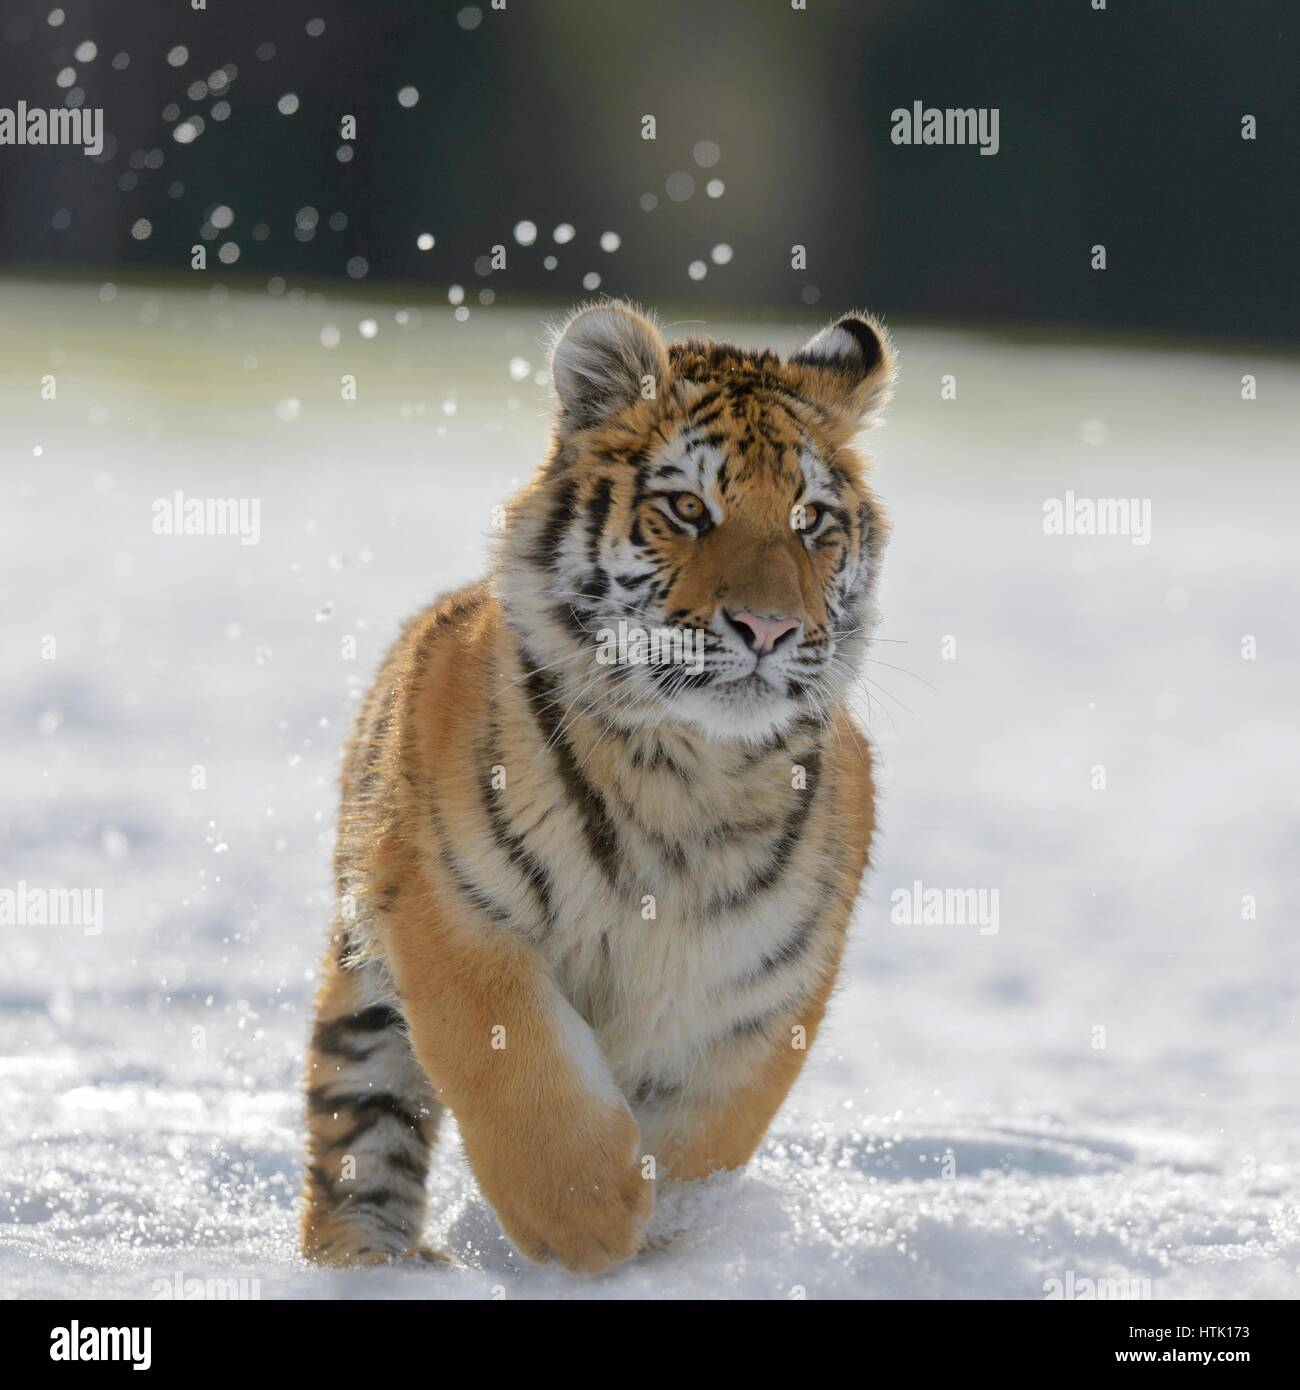 Siberian tiger (Panthera tigris altaica) juvenile running in snow, captive, Moravia, Czech Republic - Stock Image